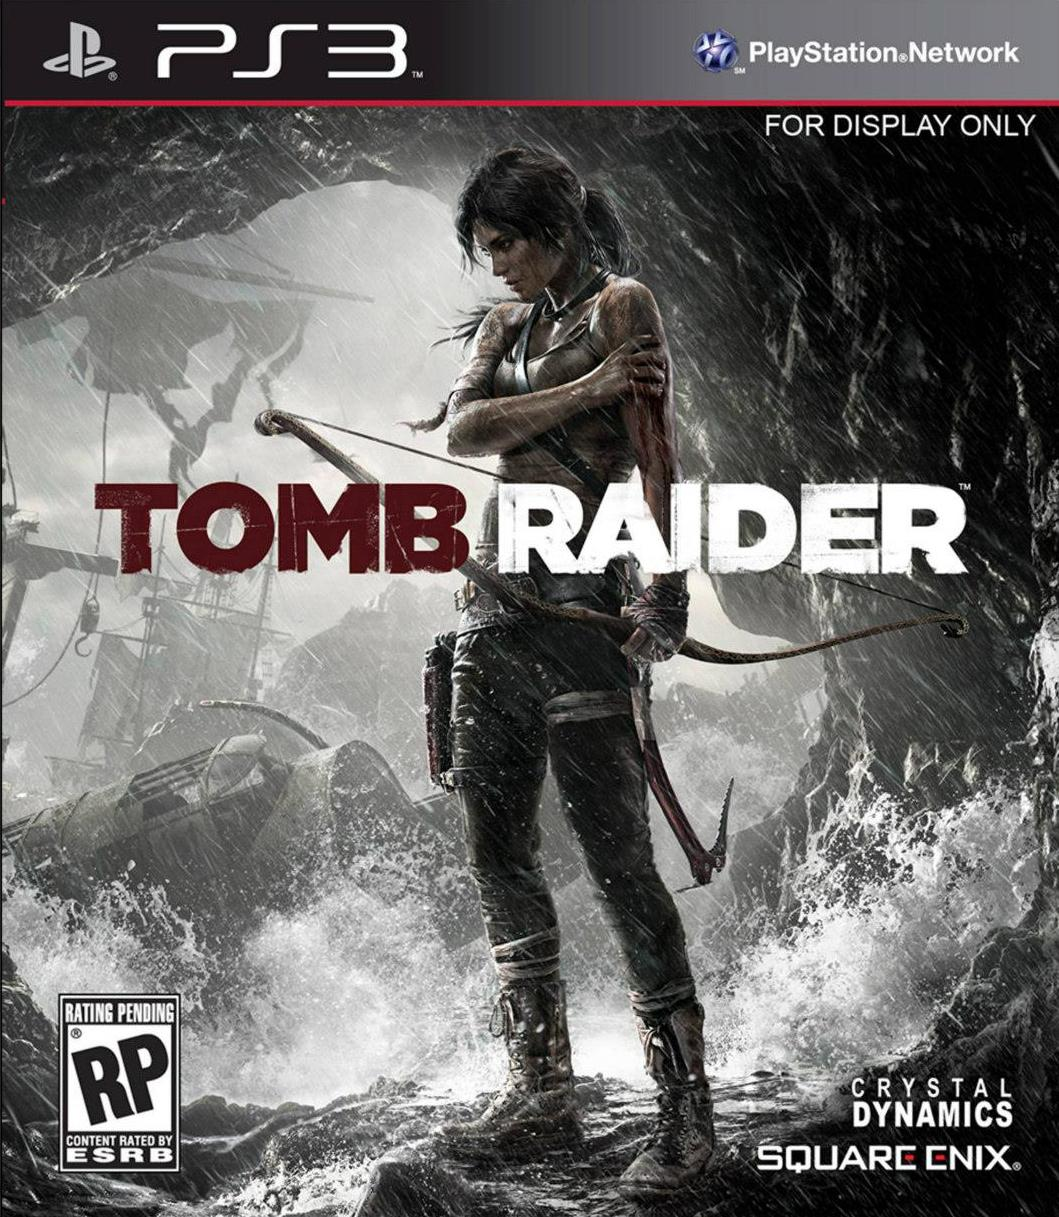 tomb-raider-ps3.jpg